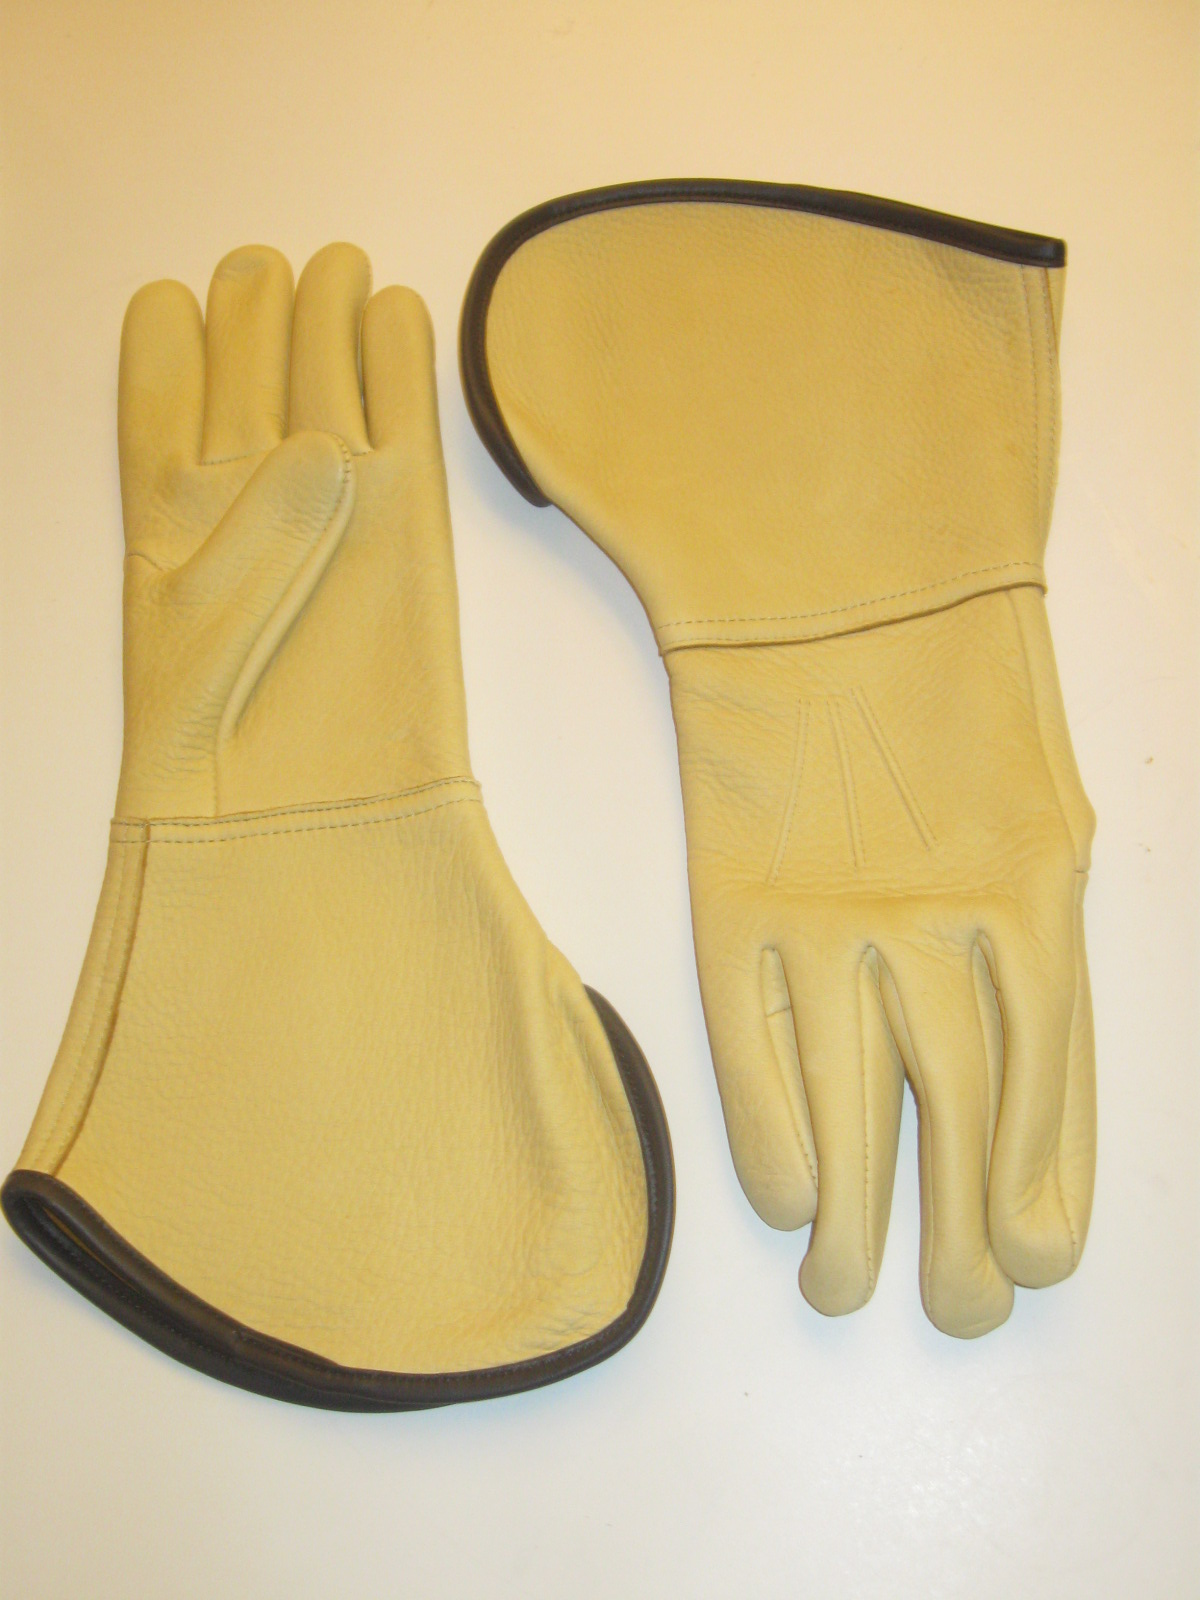 Western Cowboy Elk Hide Trail Boss Gauntlet Gloves